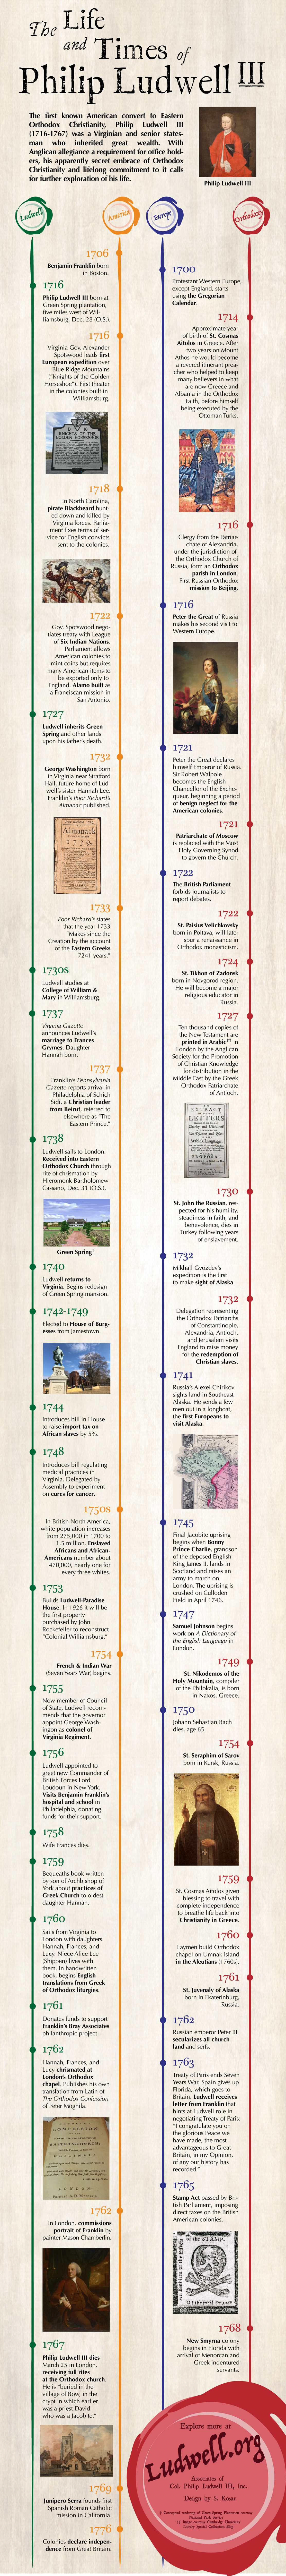 Life & Times of Philip Ludwell III Timeline Infographic